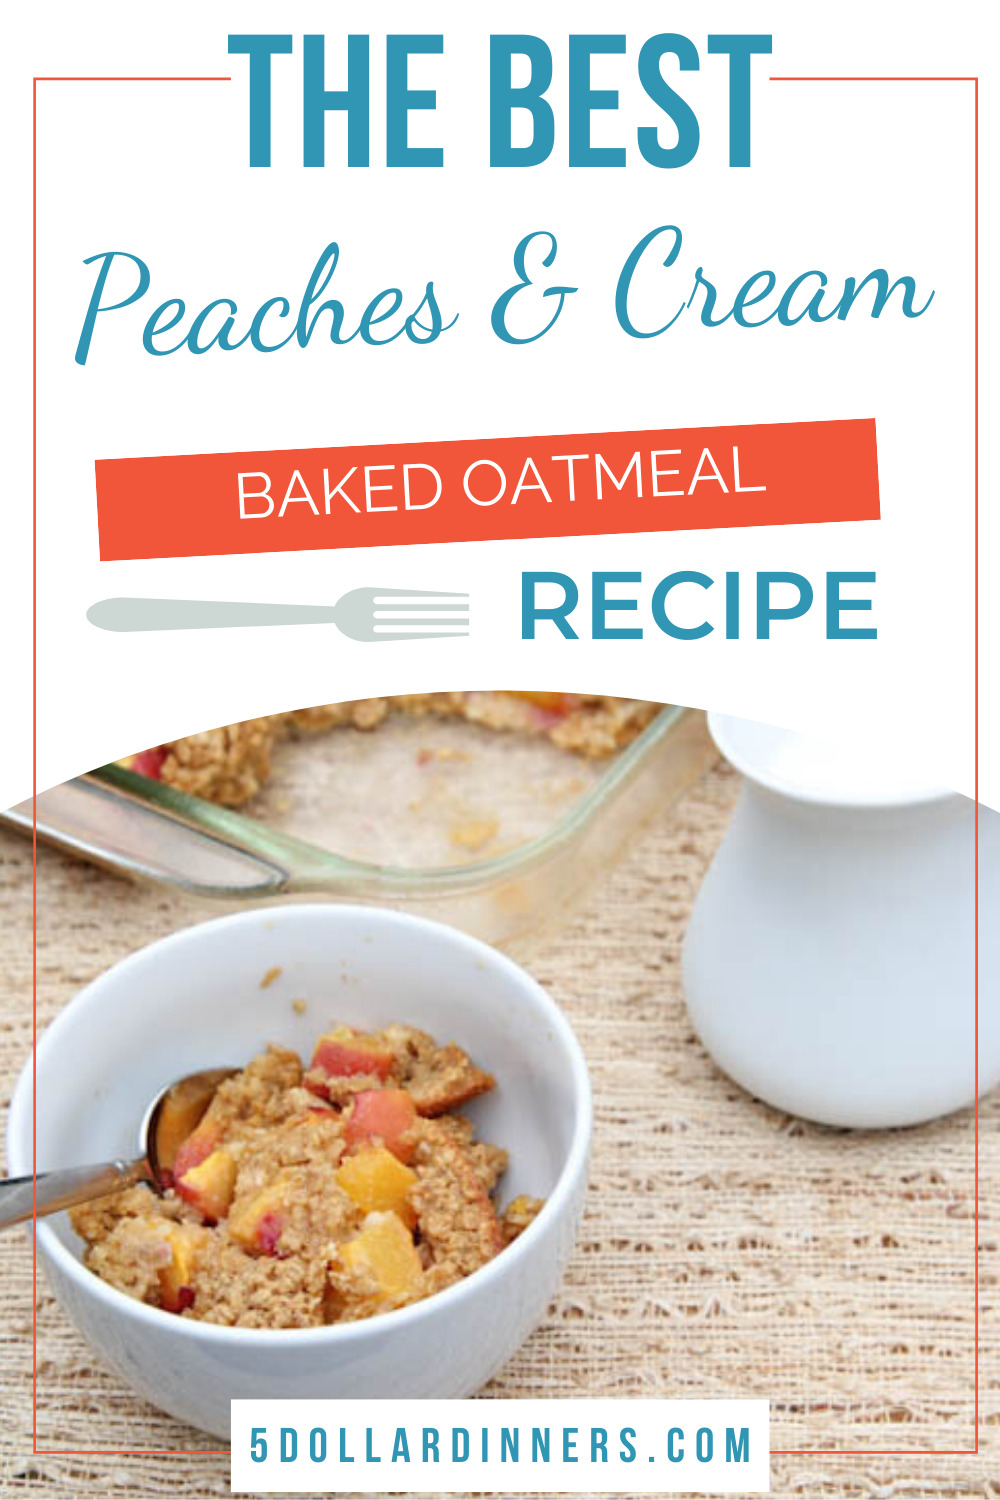 peaches and cream baked oatmeal recipe